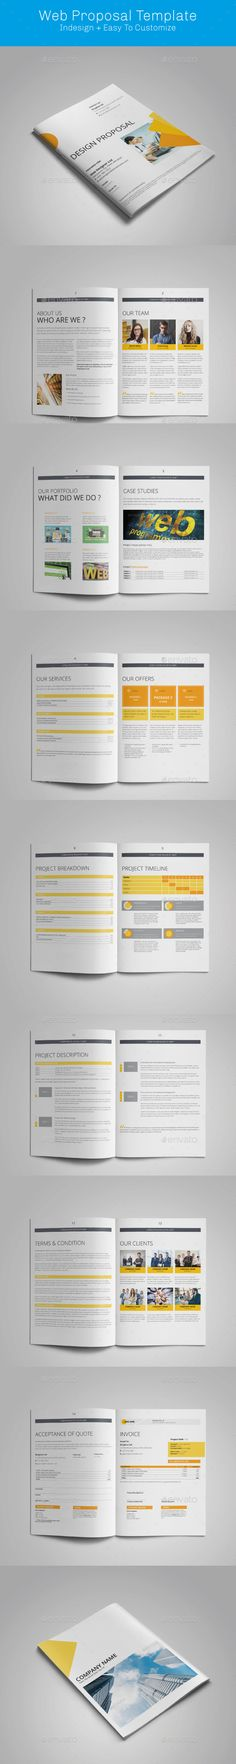 Daleman Proposal Template | Stationery, Template And Yellow